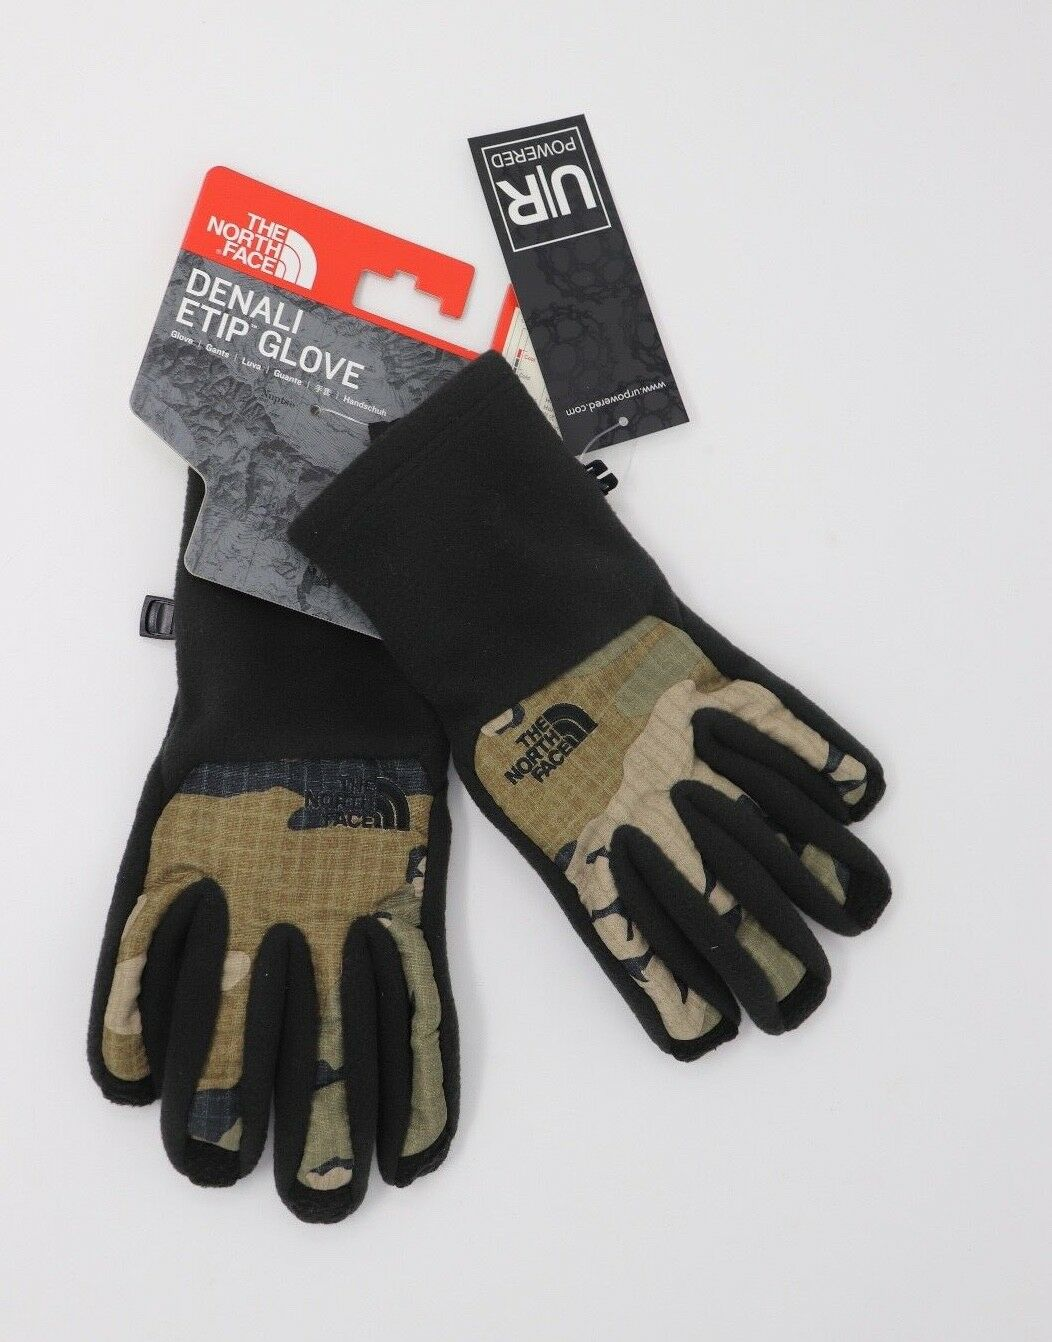 DENALI ETIP™ GLOVES by The North Face CAMOFLAUGE / BLK Small or XL